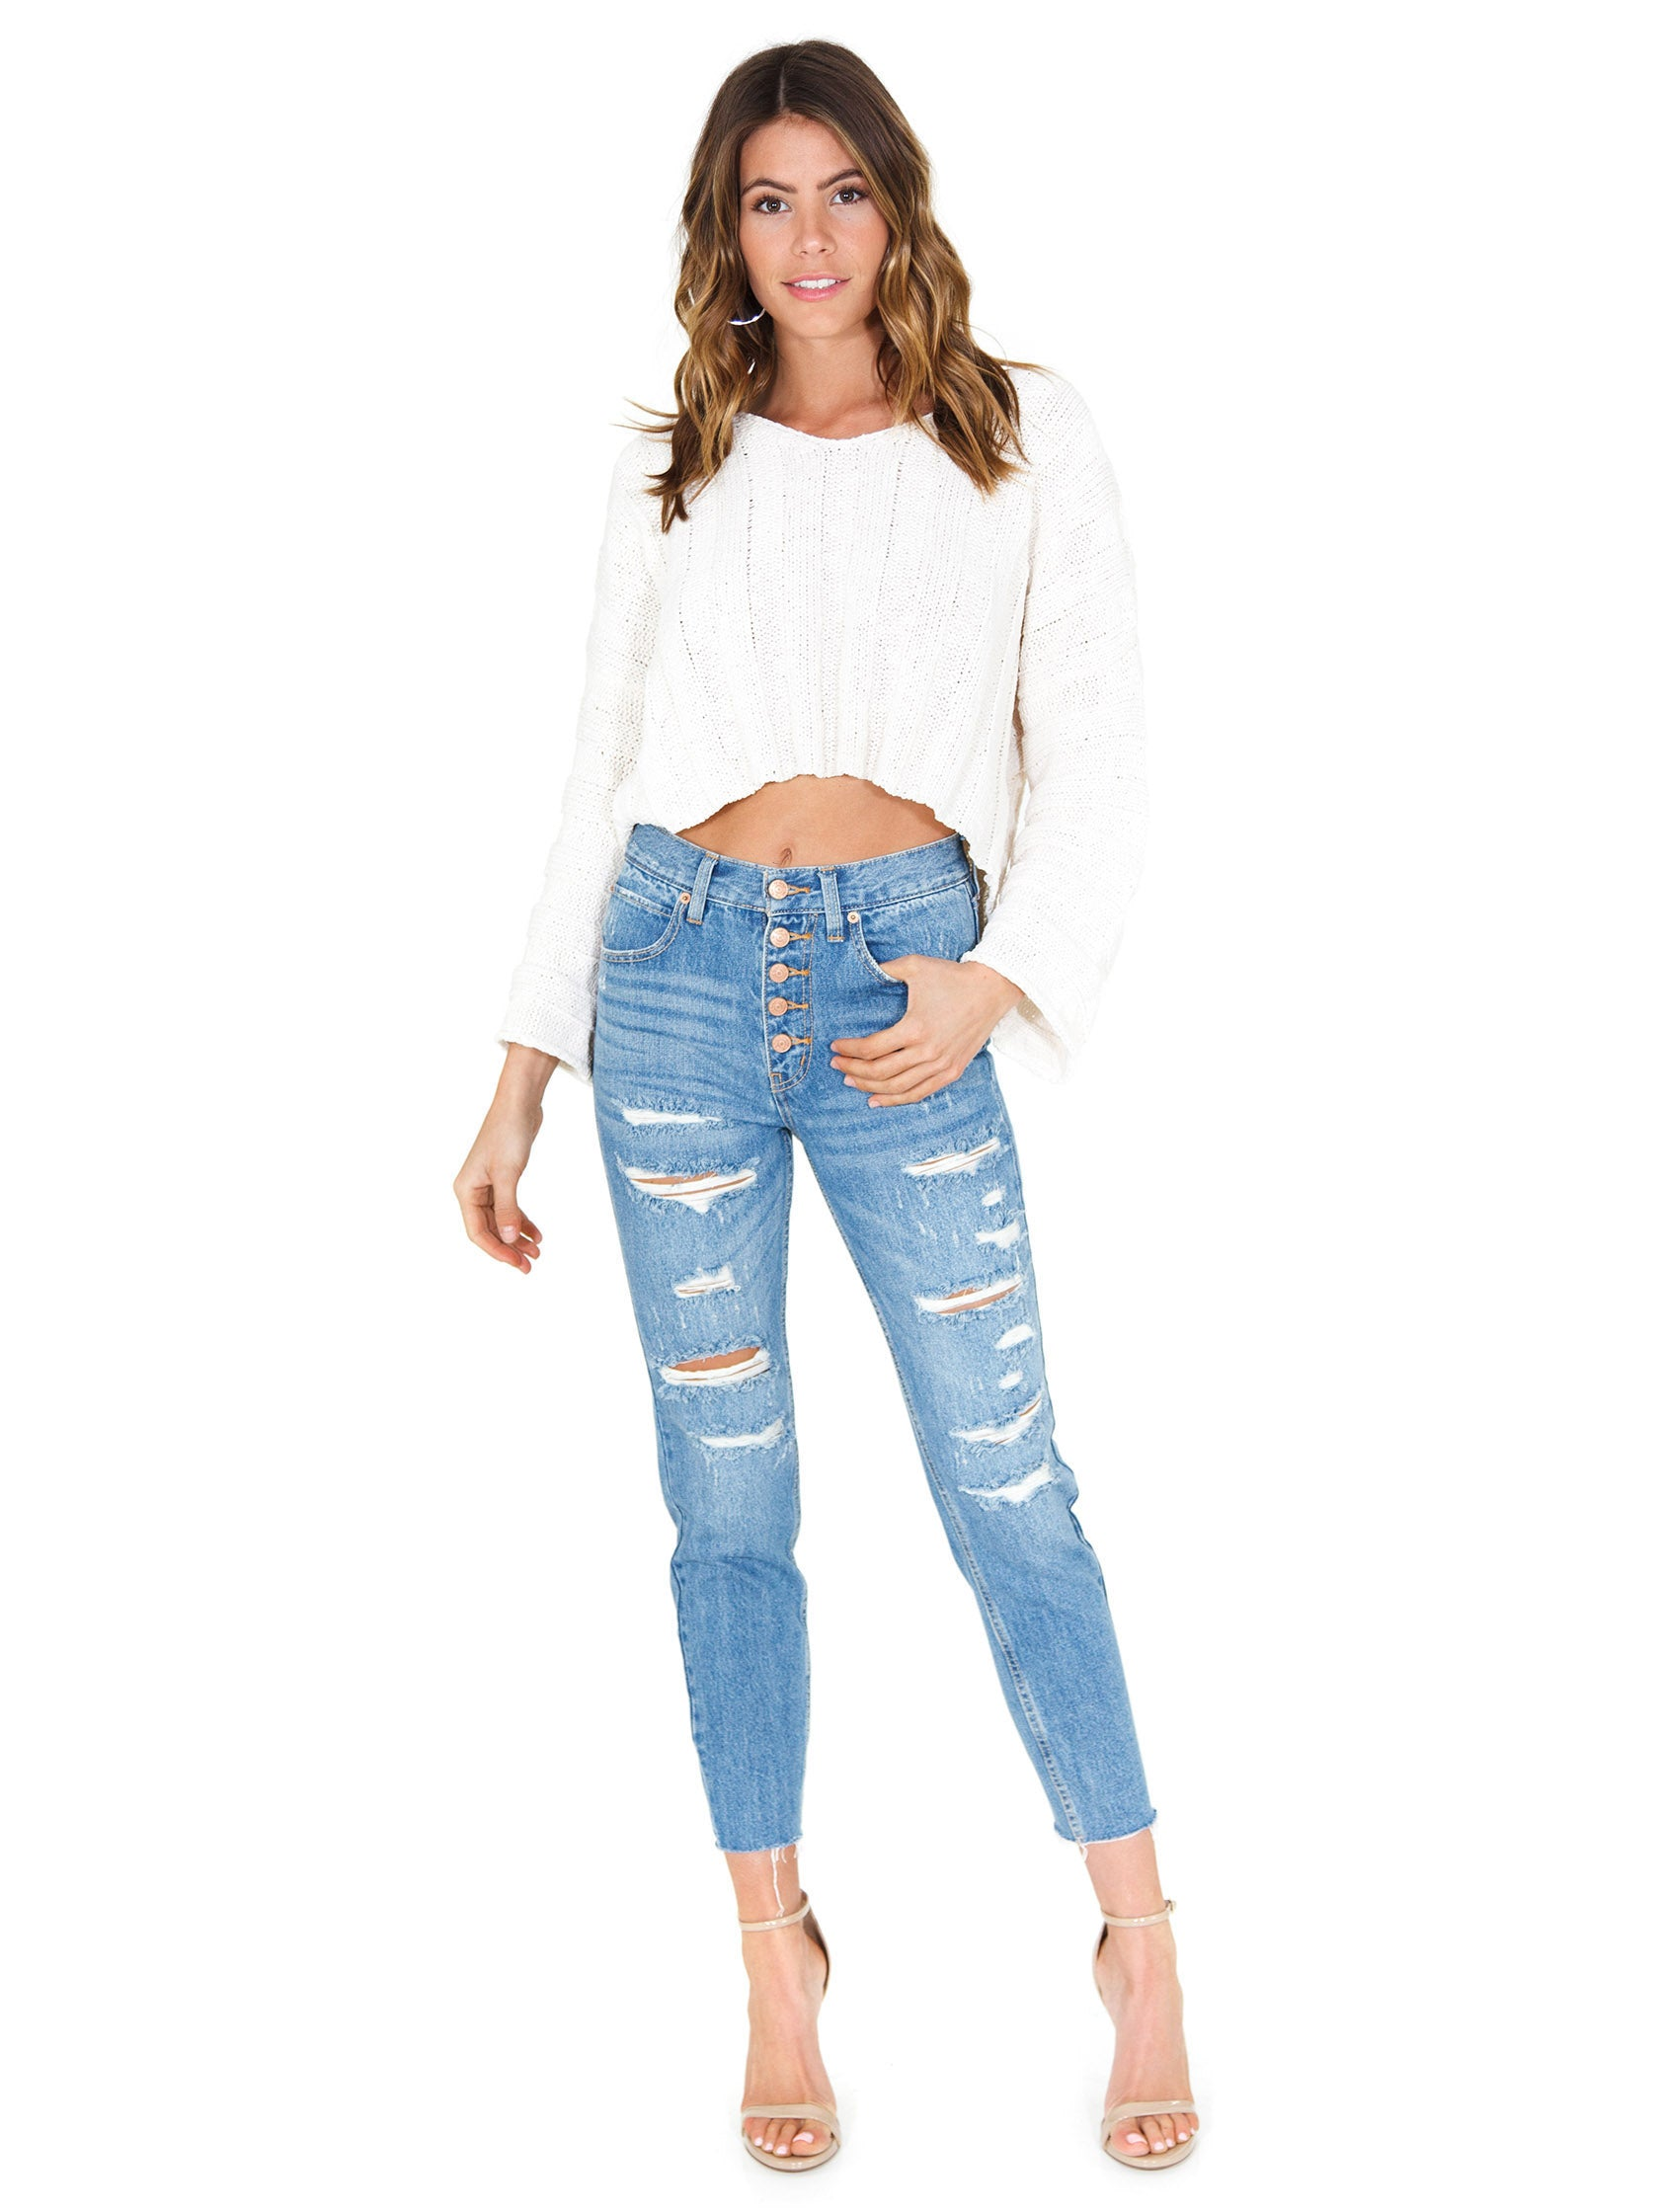 Girl wearing a bottoms rental from Free People called Blossom Rigid Skinny Jeans